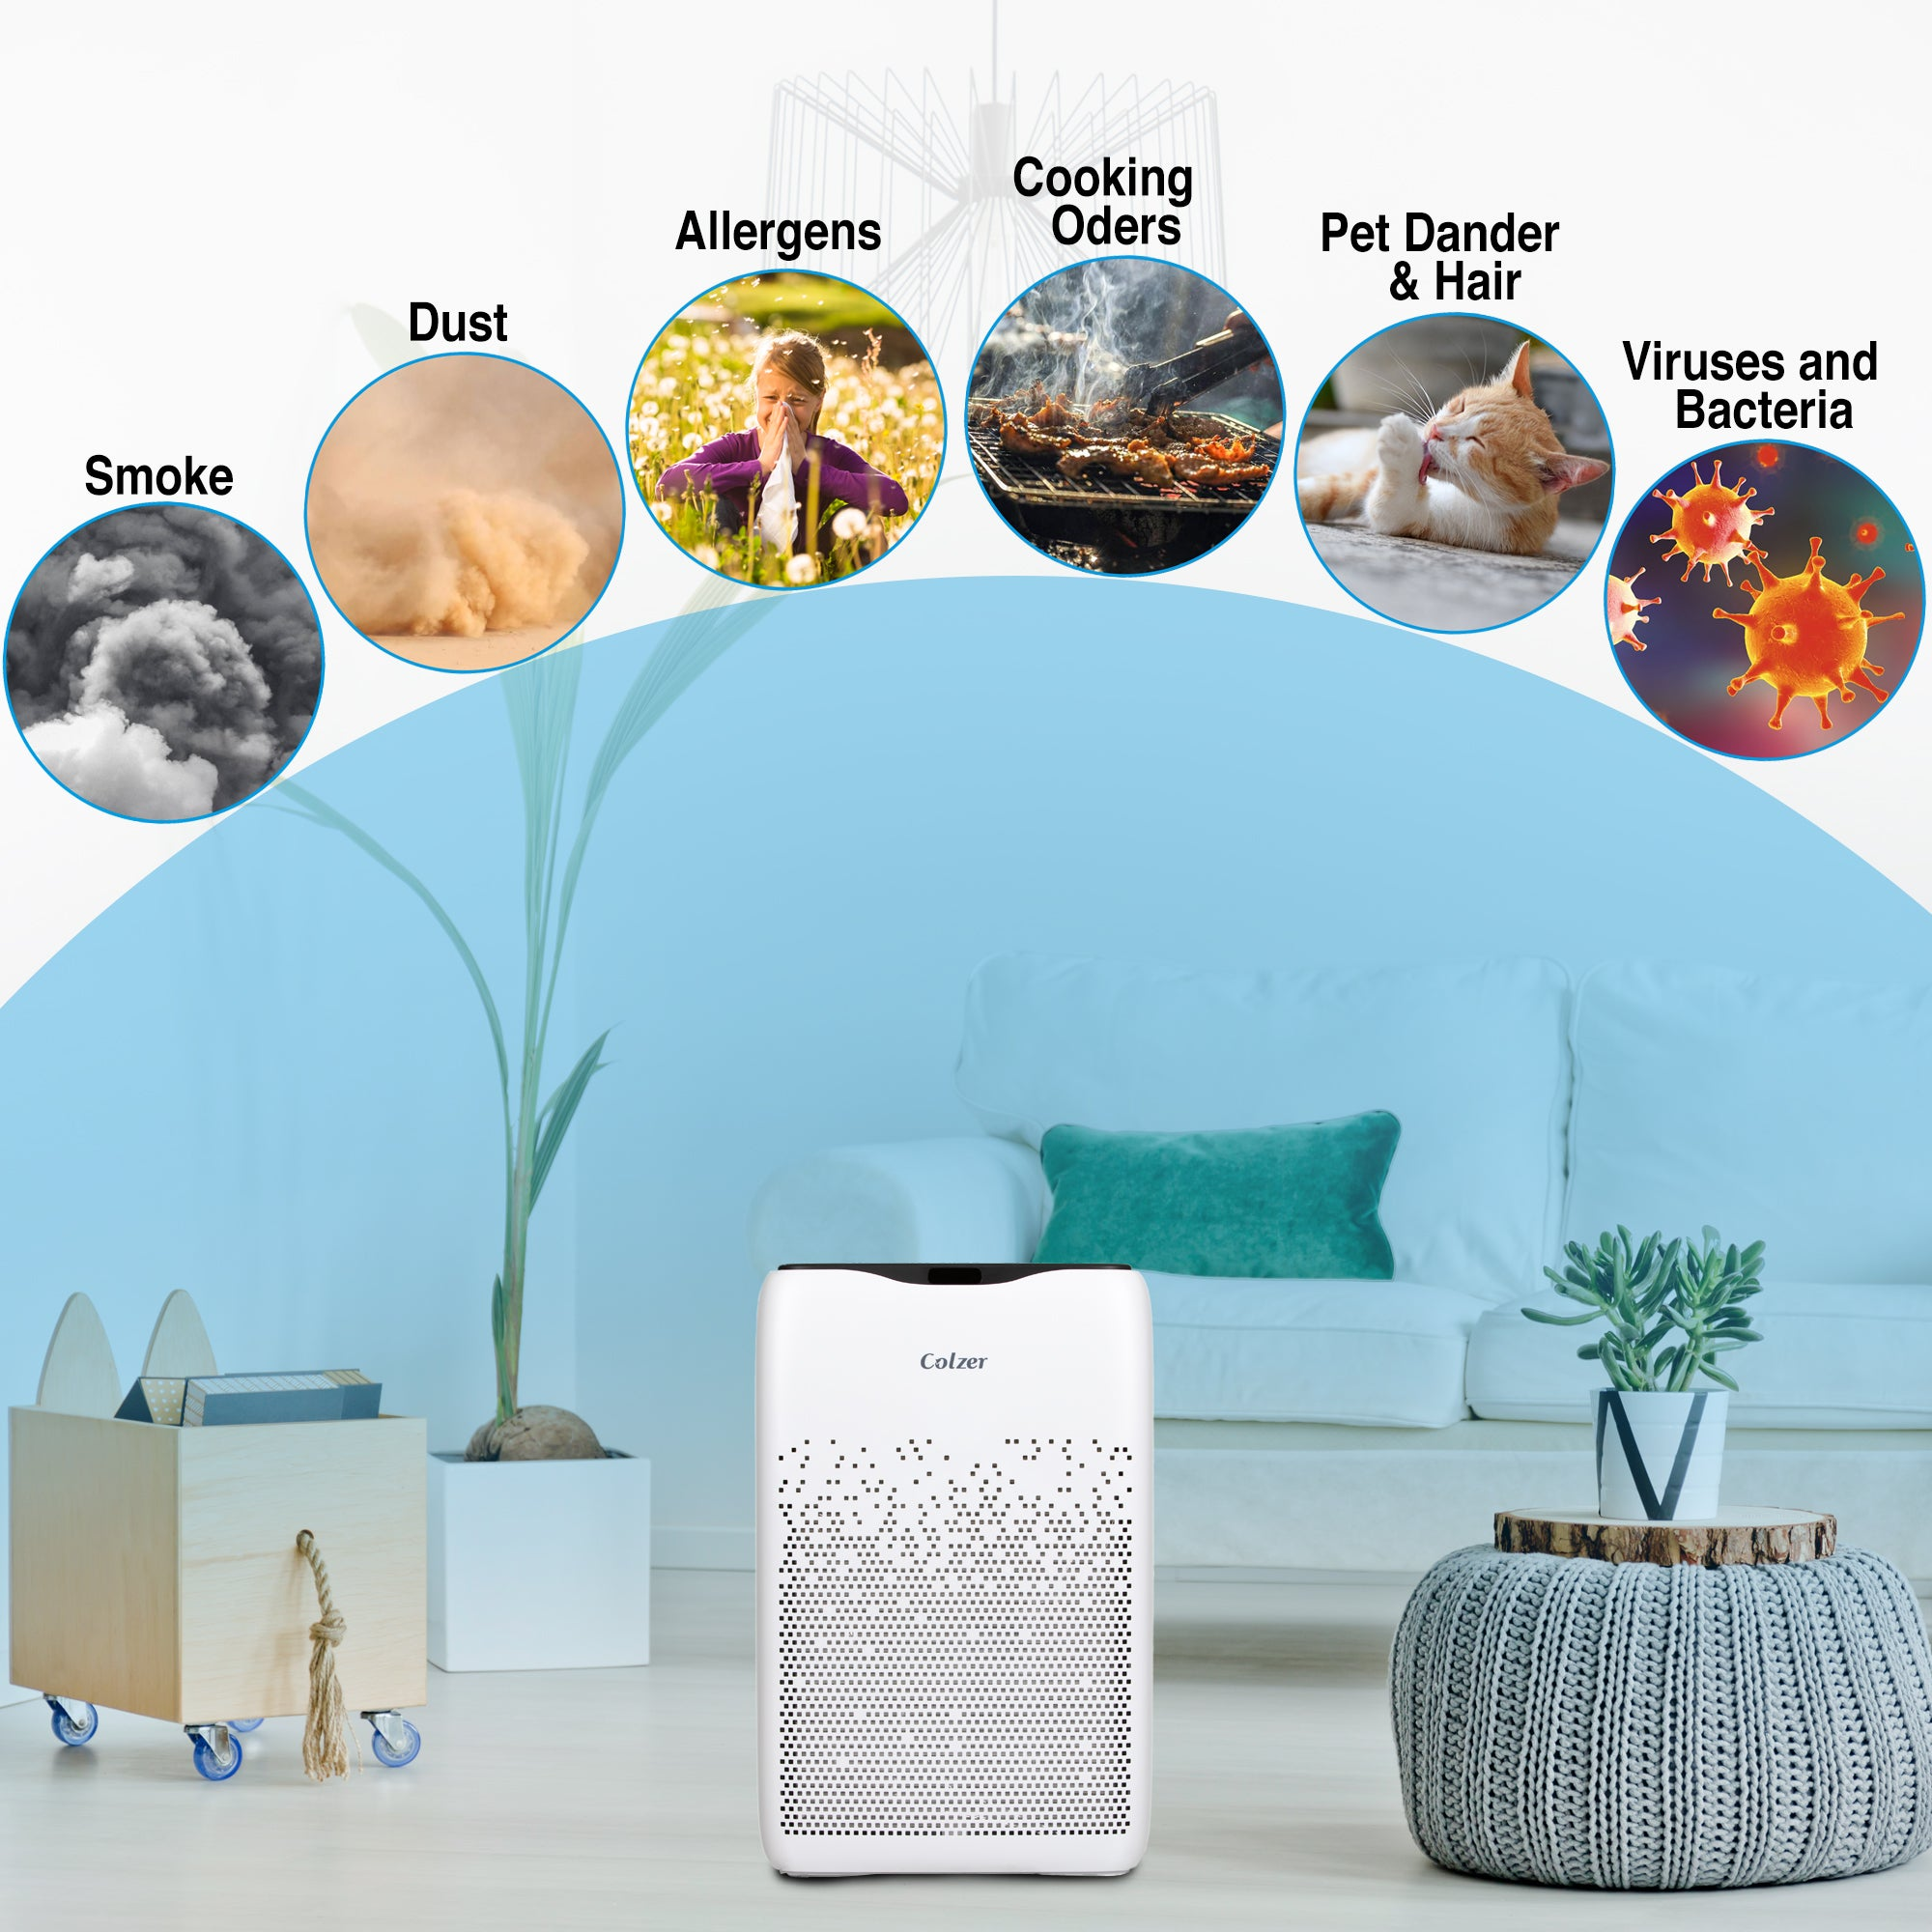 How to Choose the Right Air Purifier?